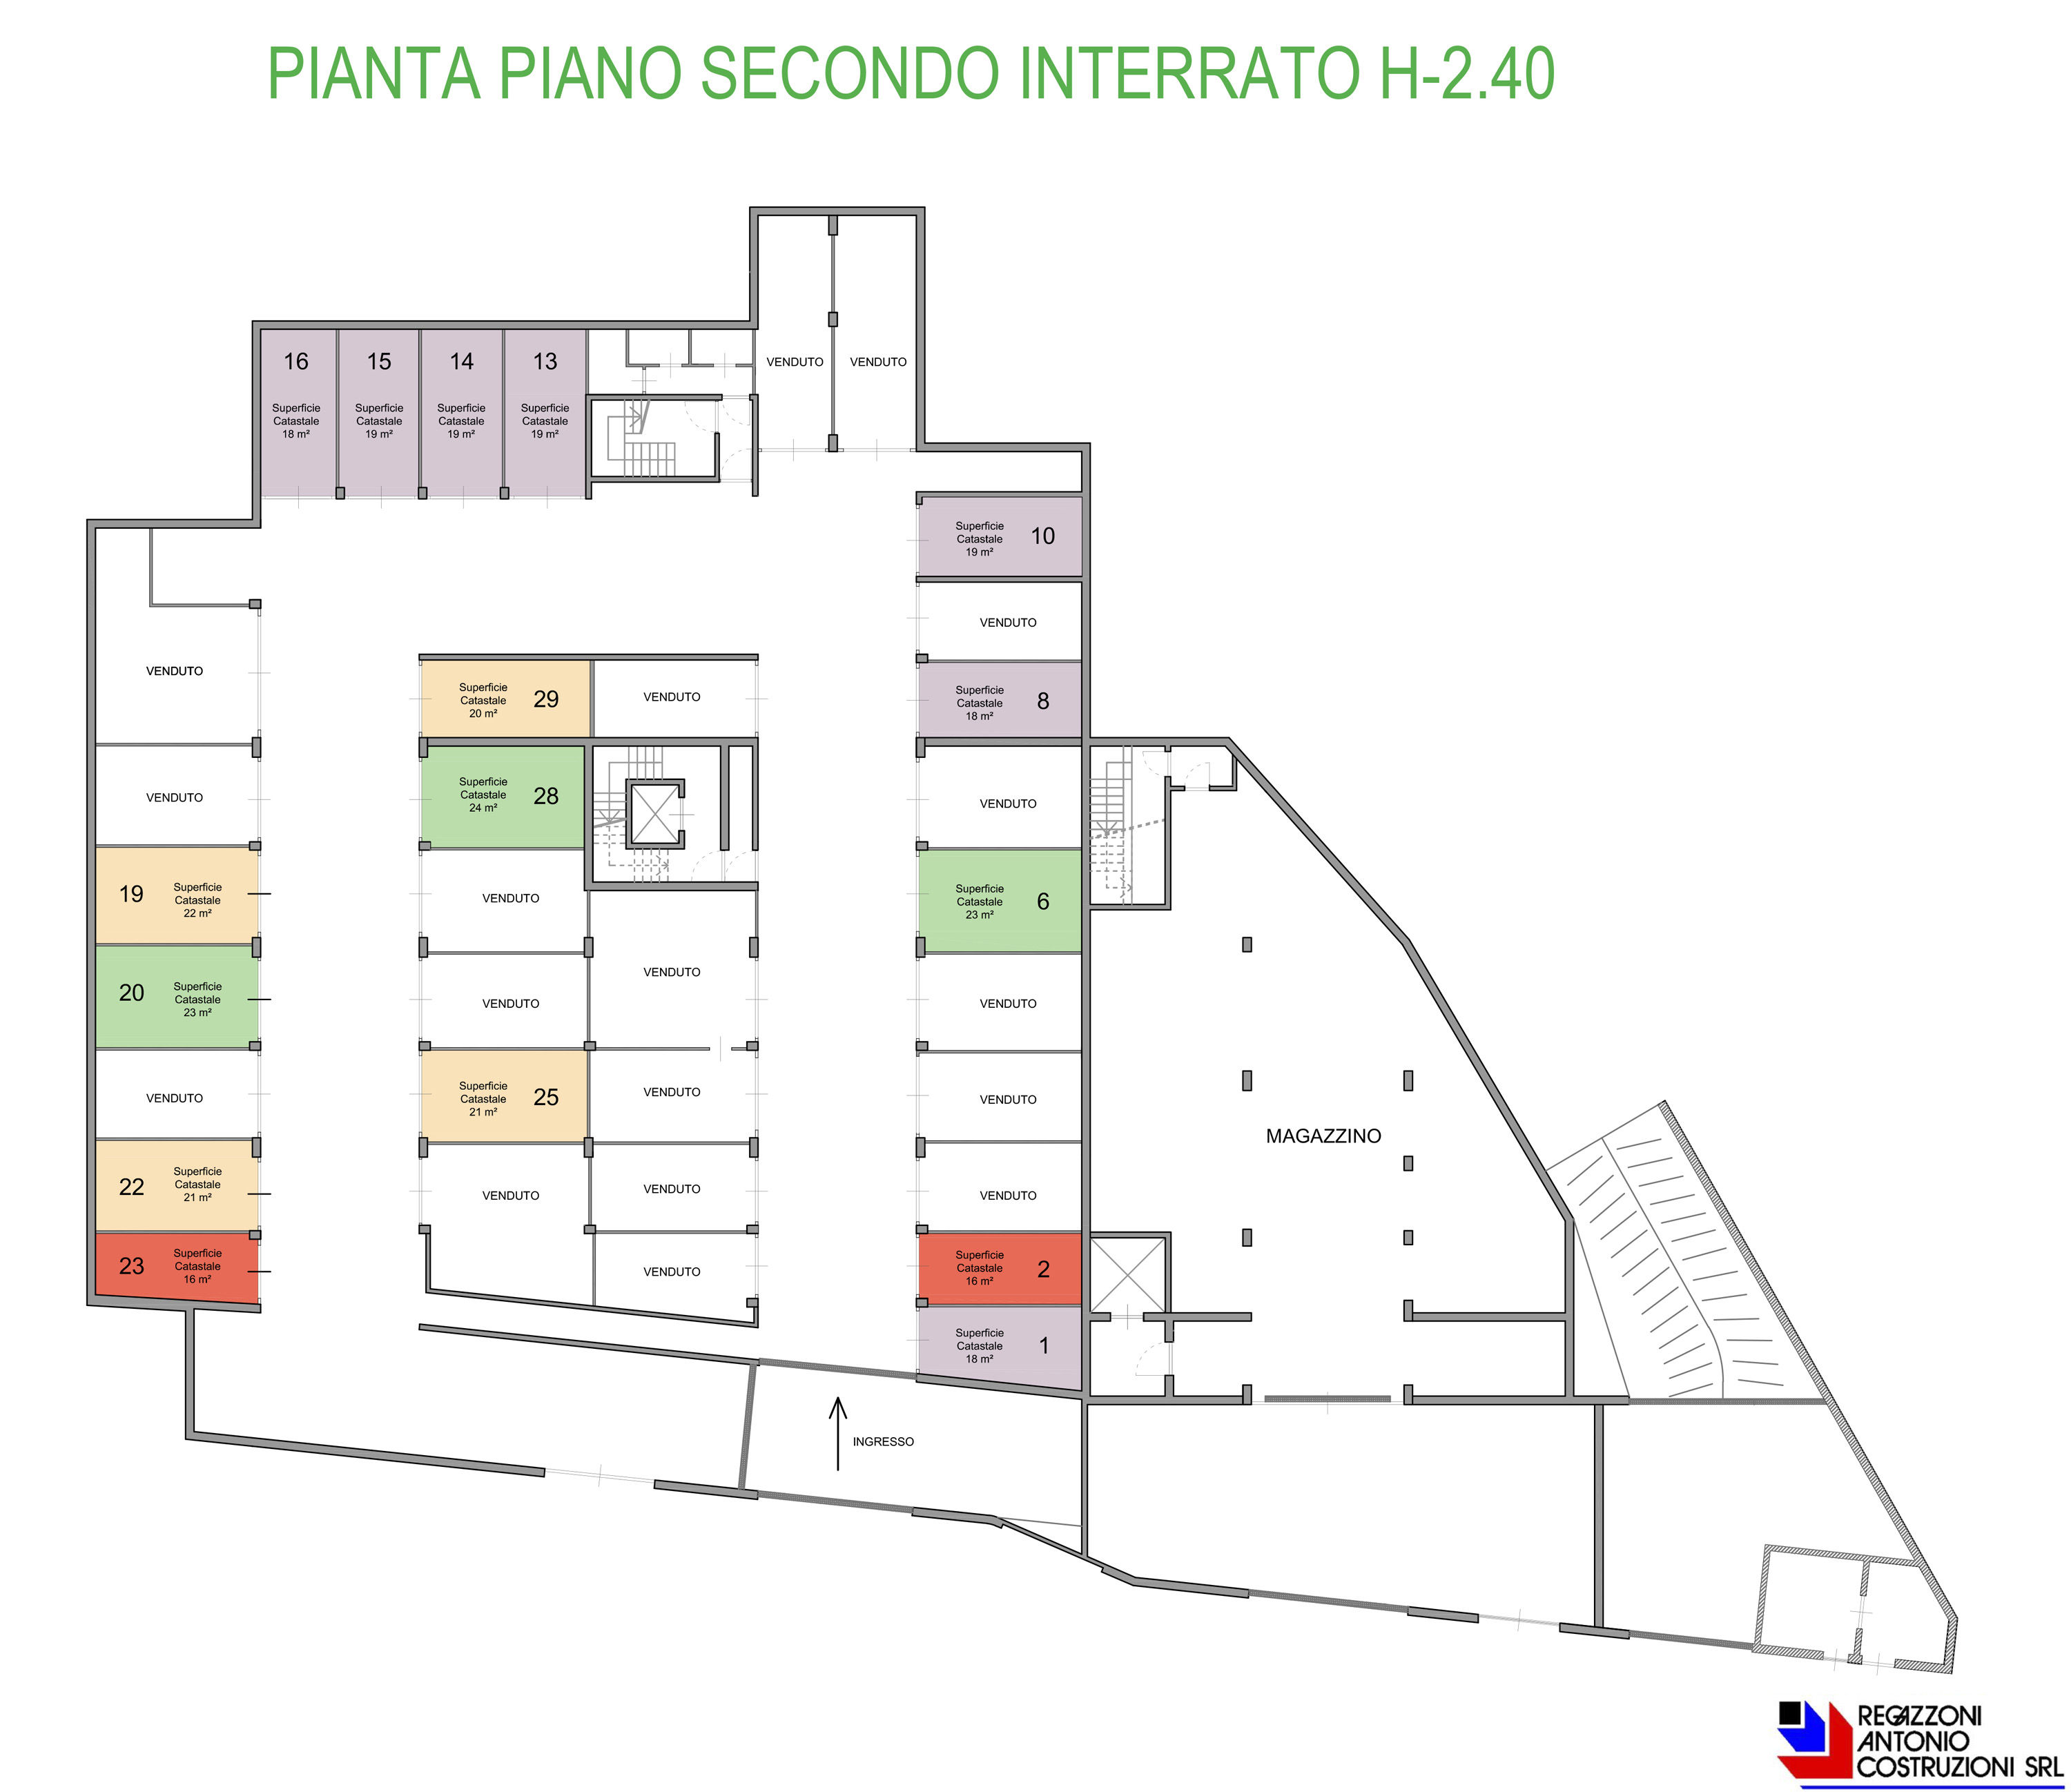 Pianta generale piano secondo interrato - scala1a200